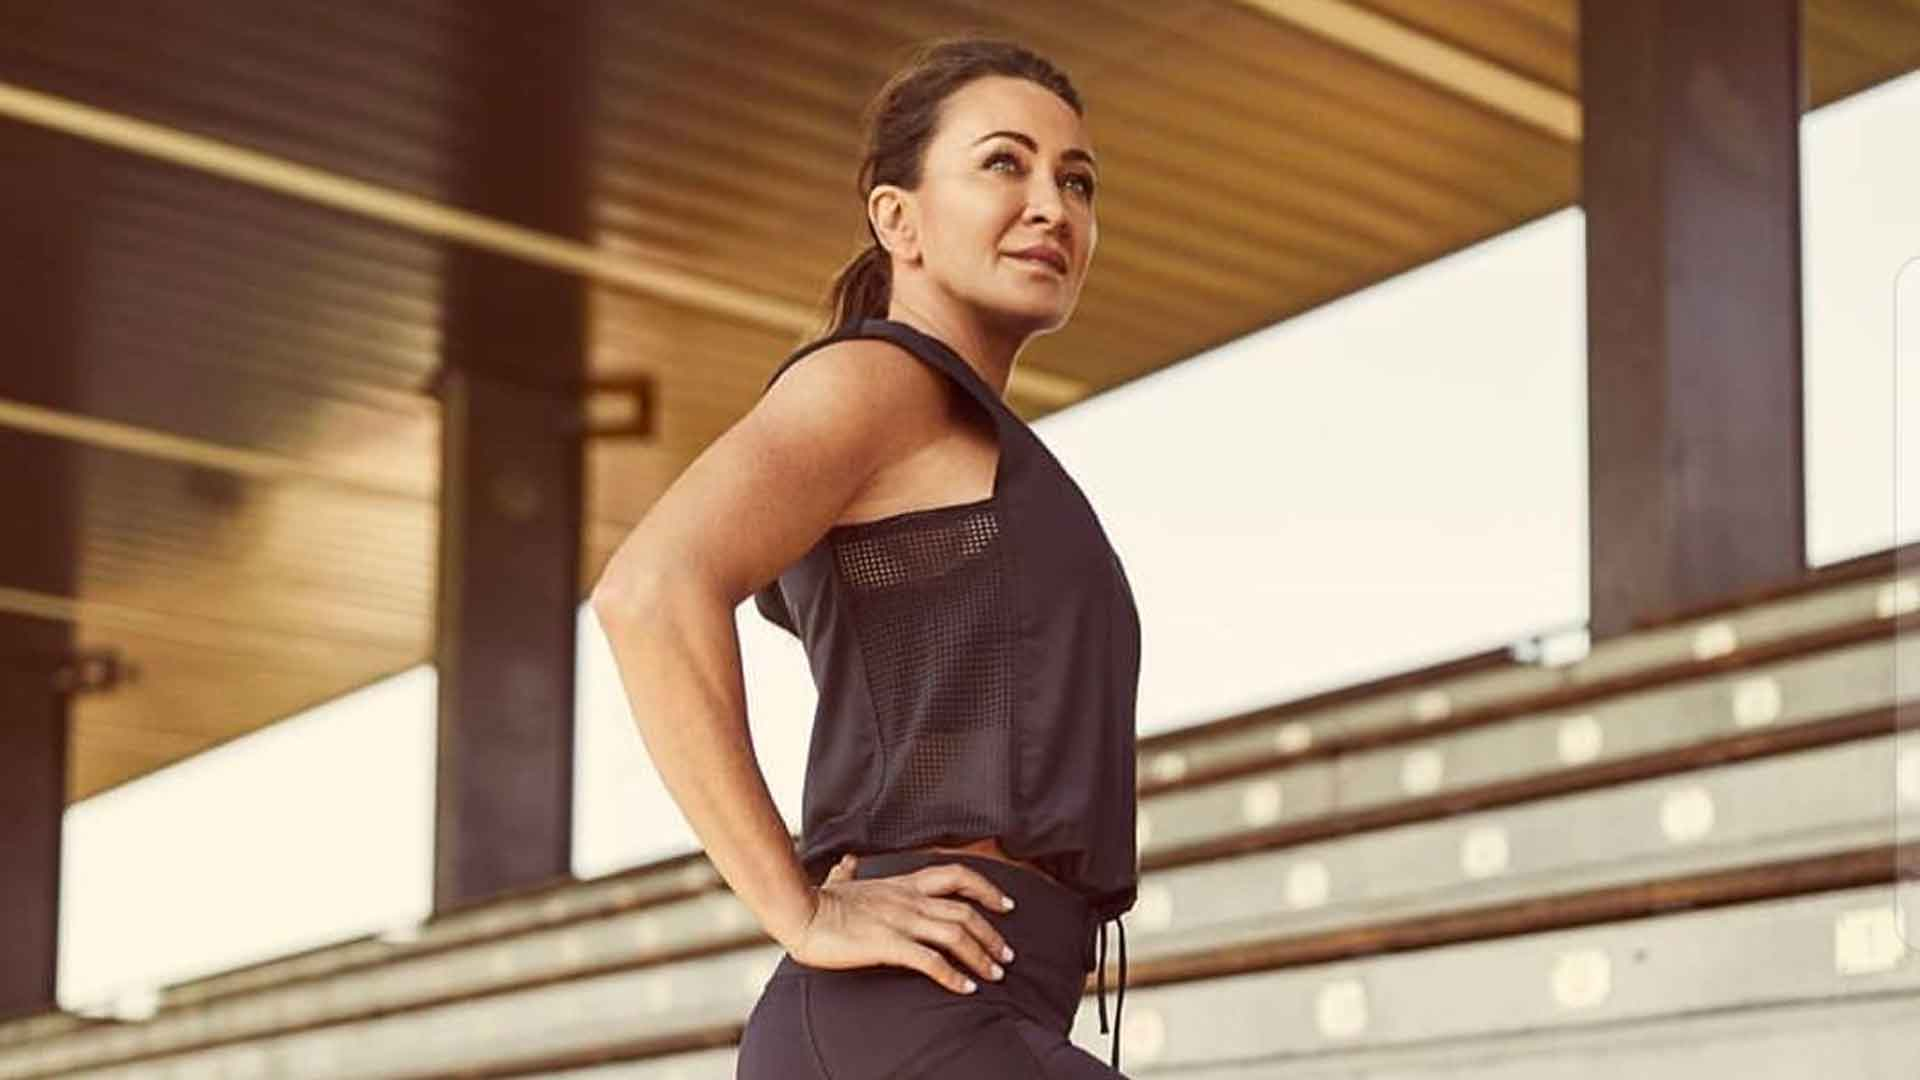 The 'secrets' behind building a multi-million dollar fitness empire